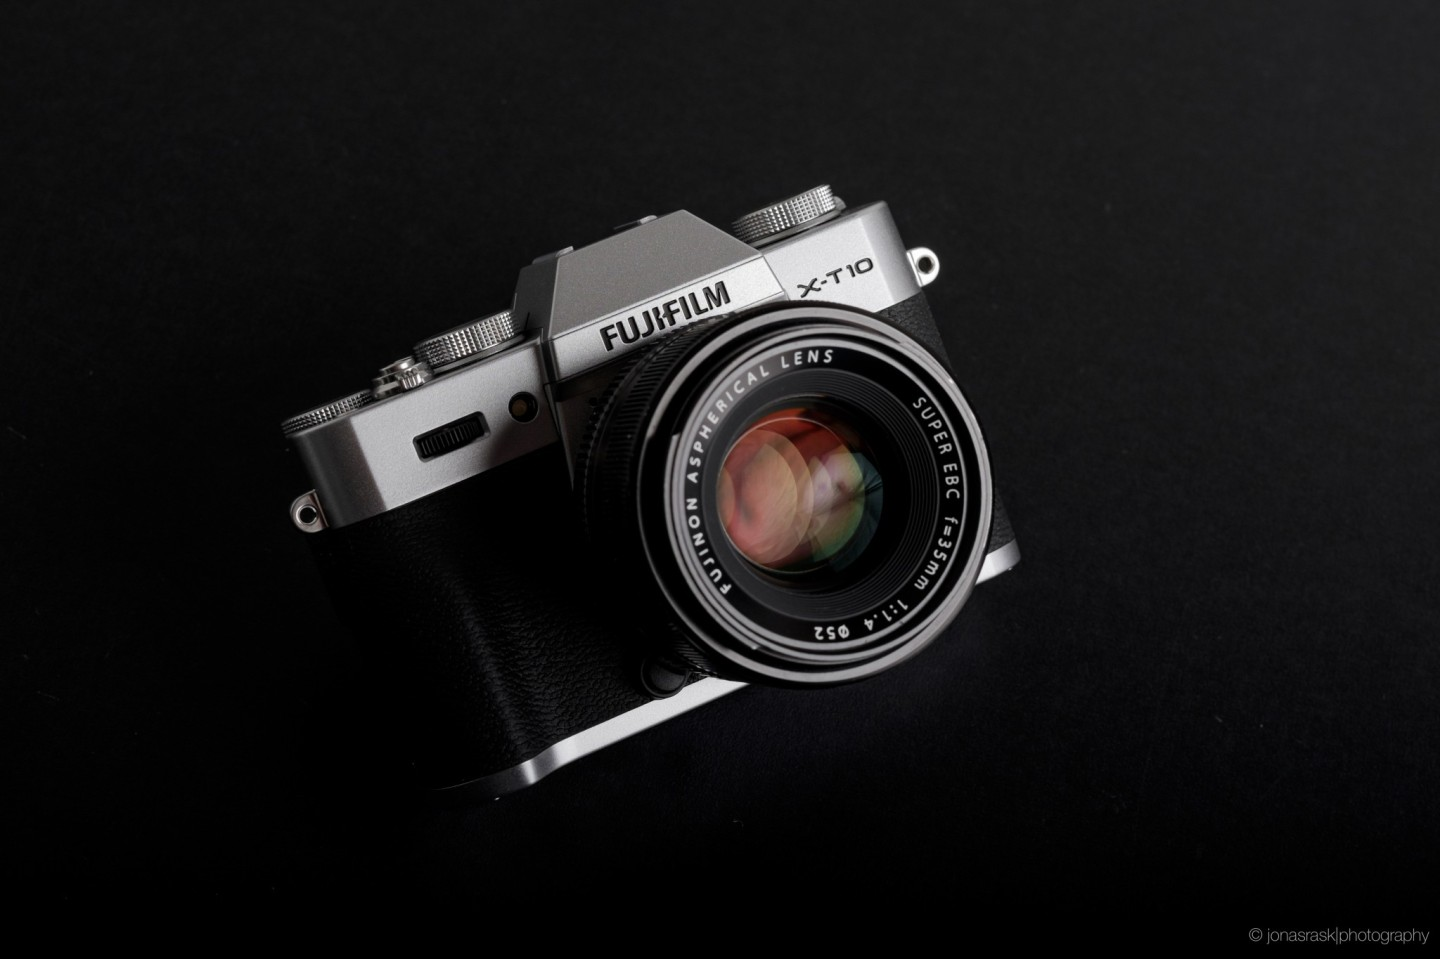 The Fujifilm X-T10 Review – A small powerhouse